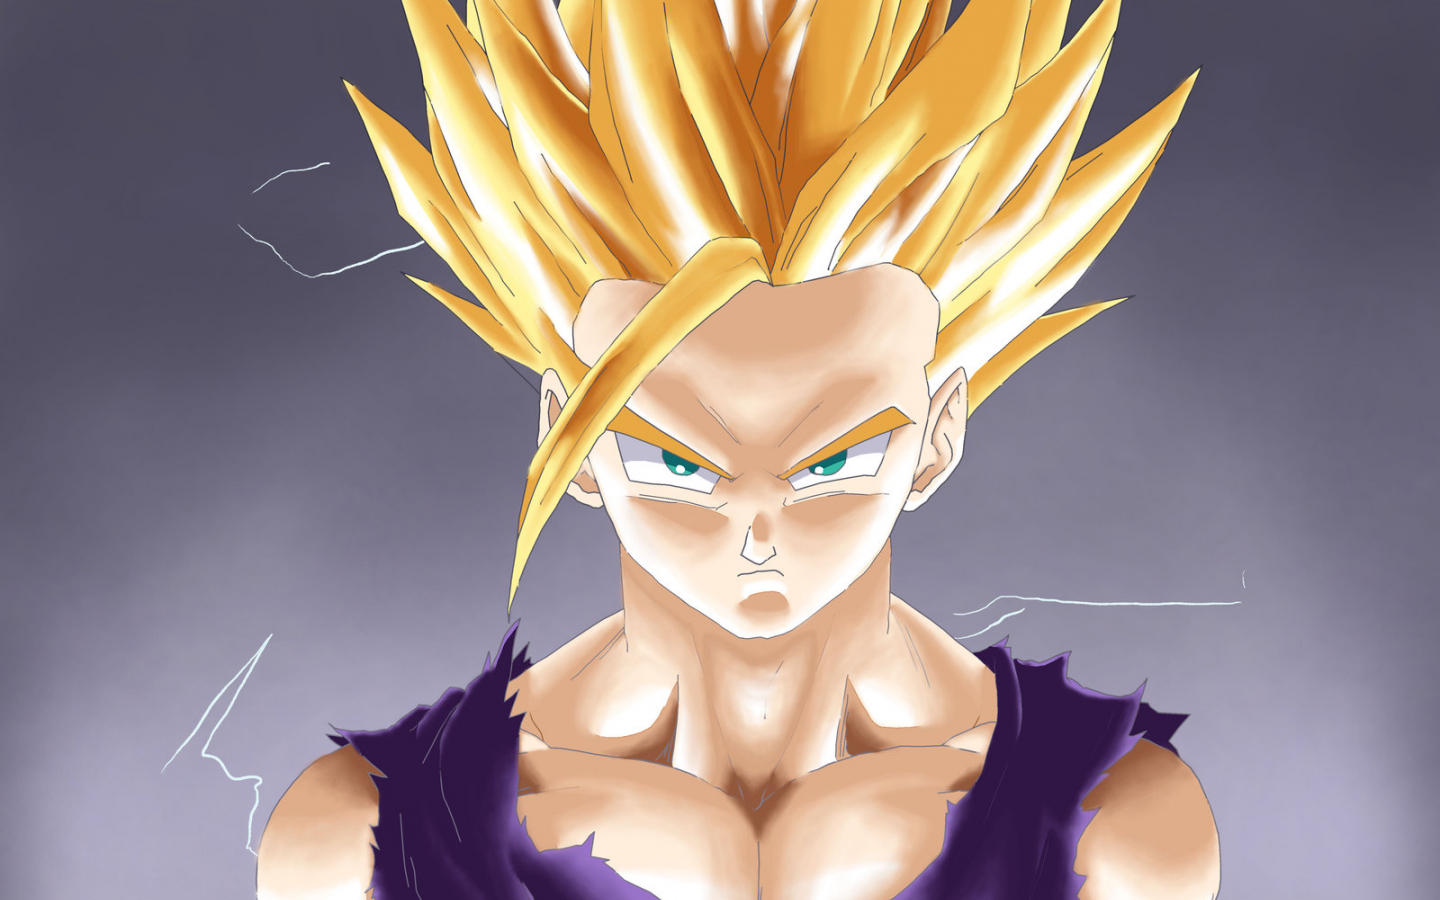 Free Download Super Saiyan 2 Gohan Wallpaper Teen Gohan Dragon